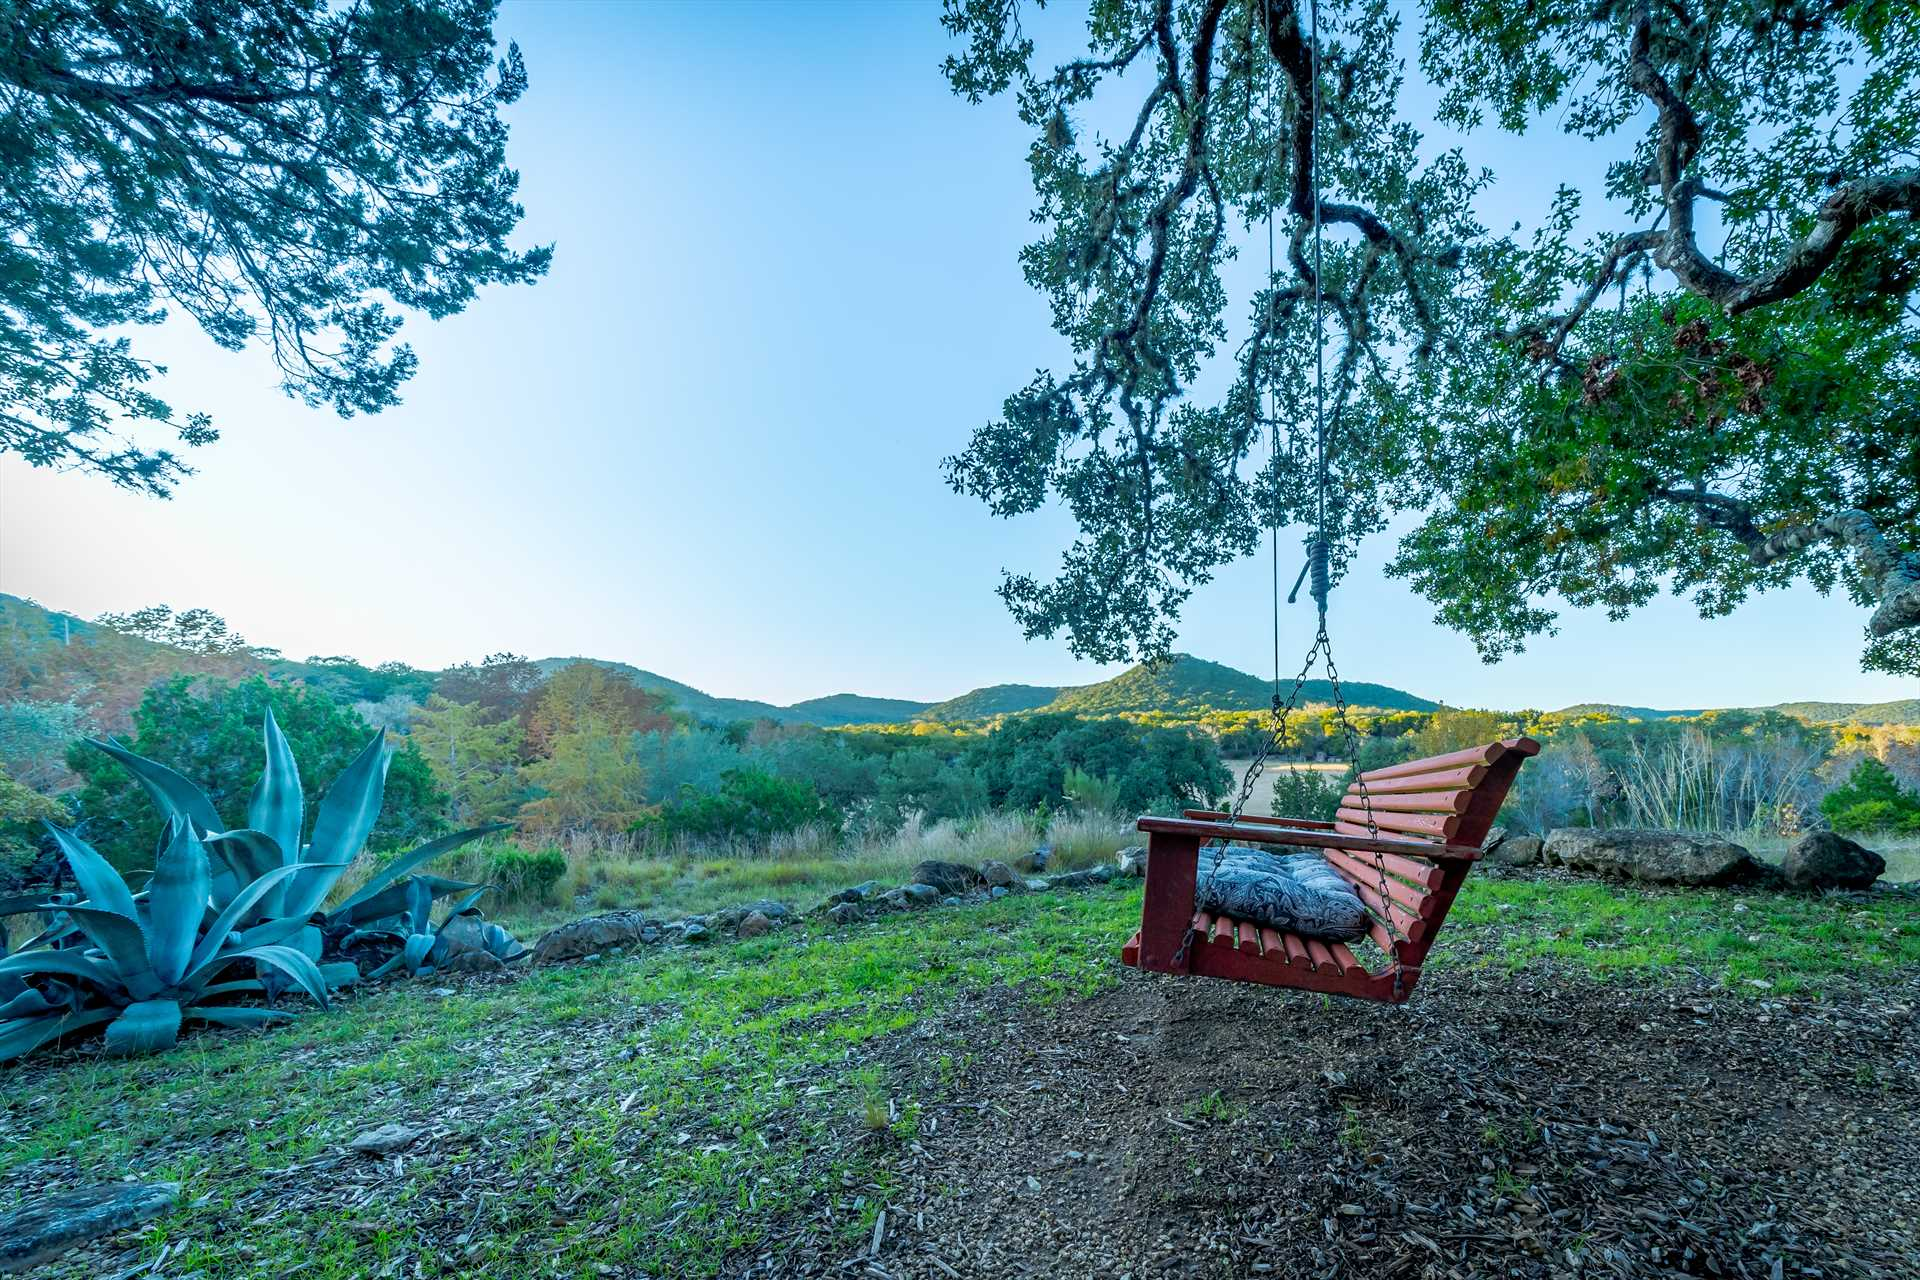 You'll want to take a seat on the swing here! It's a wonderful romantic setting, and the mountain views are breathtaking.